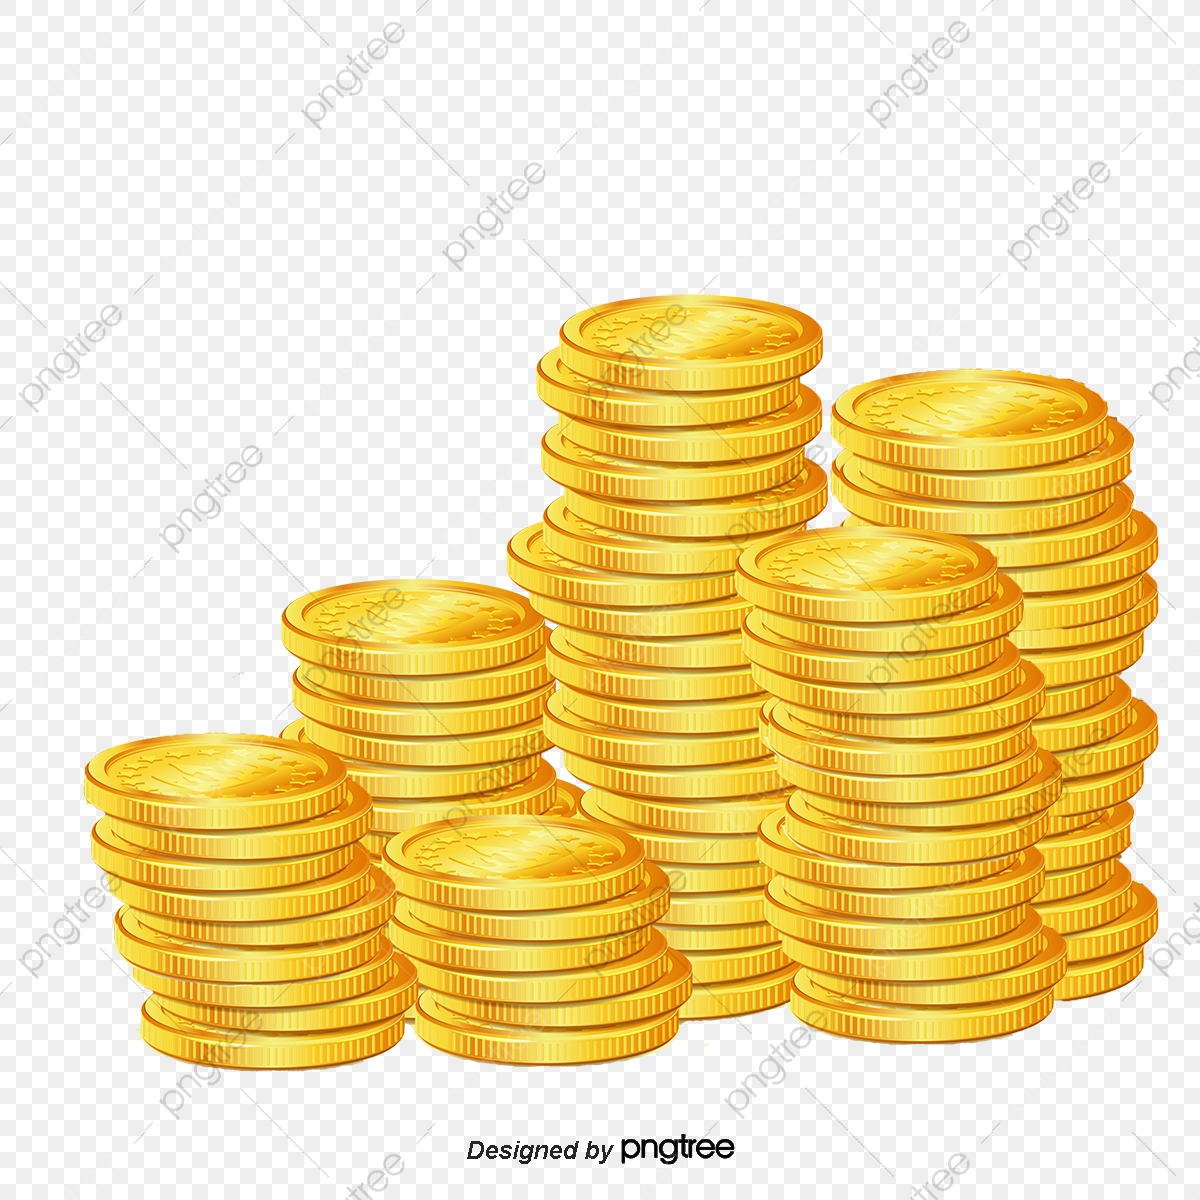 Pile Of Gold Coins, Gold PNG Transparent Clipart Image and.